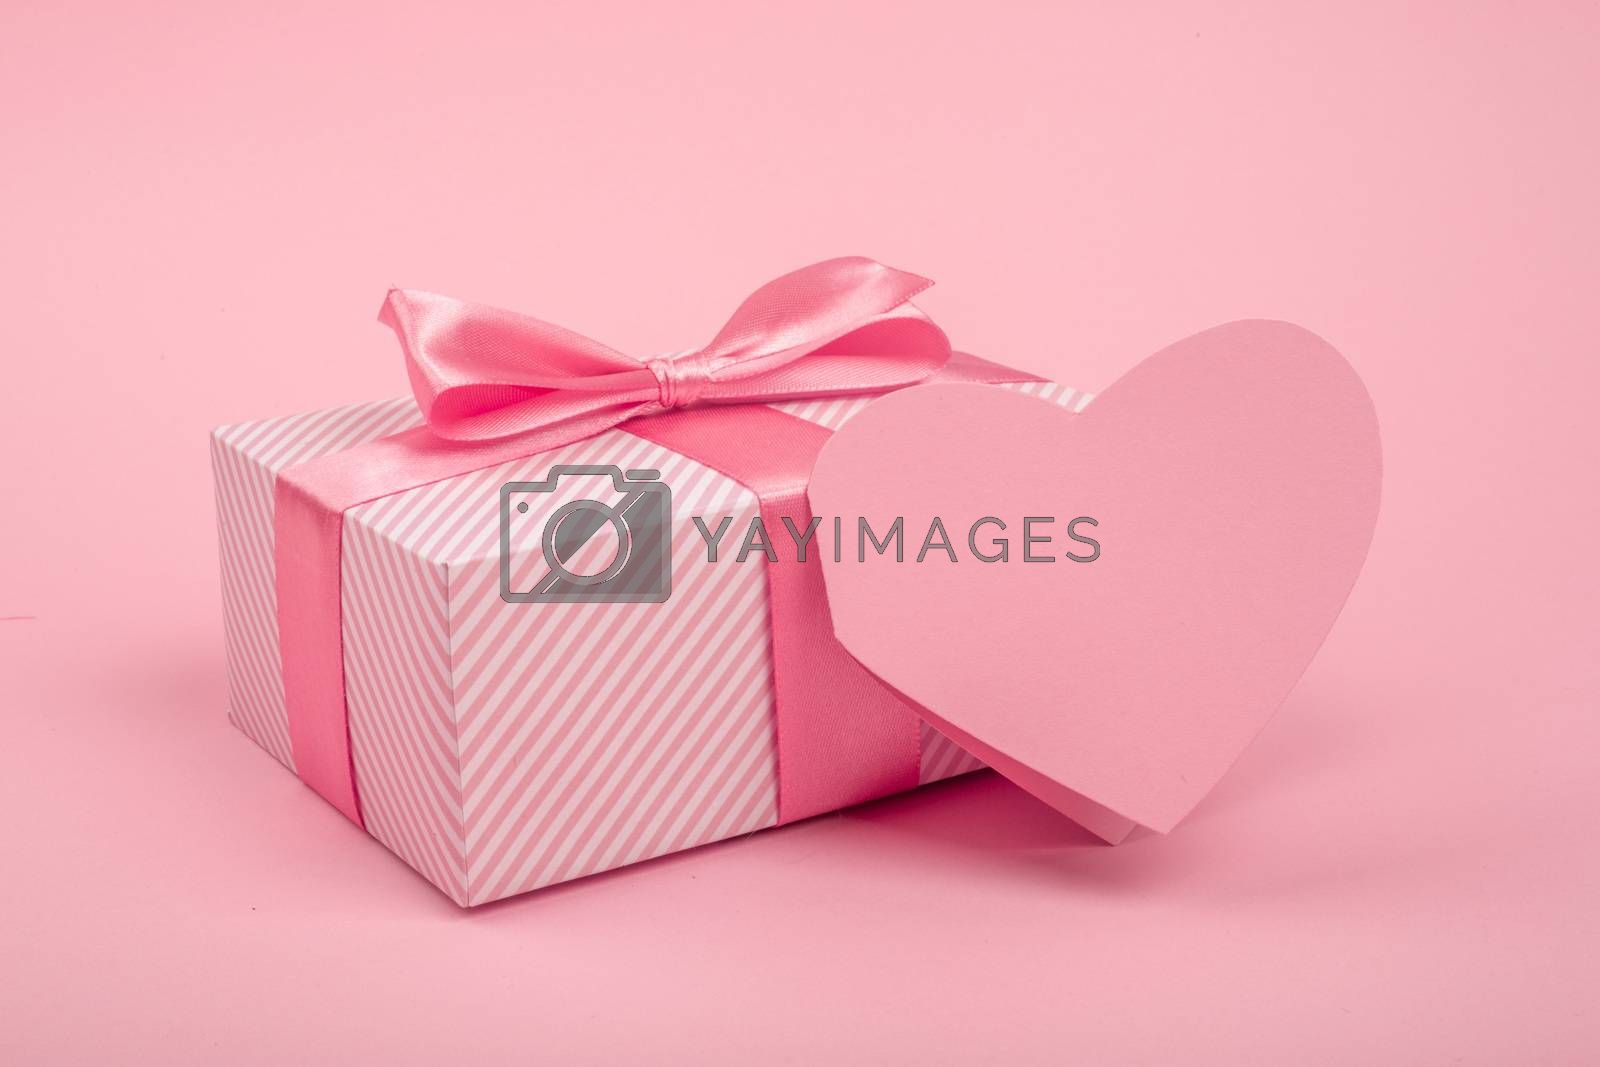 Valentine Day gift in a box wrapped in striped paper and tied with silk ribbon bow and heart shapes greeting card on pink background with copy space for text